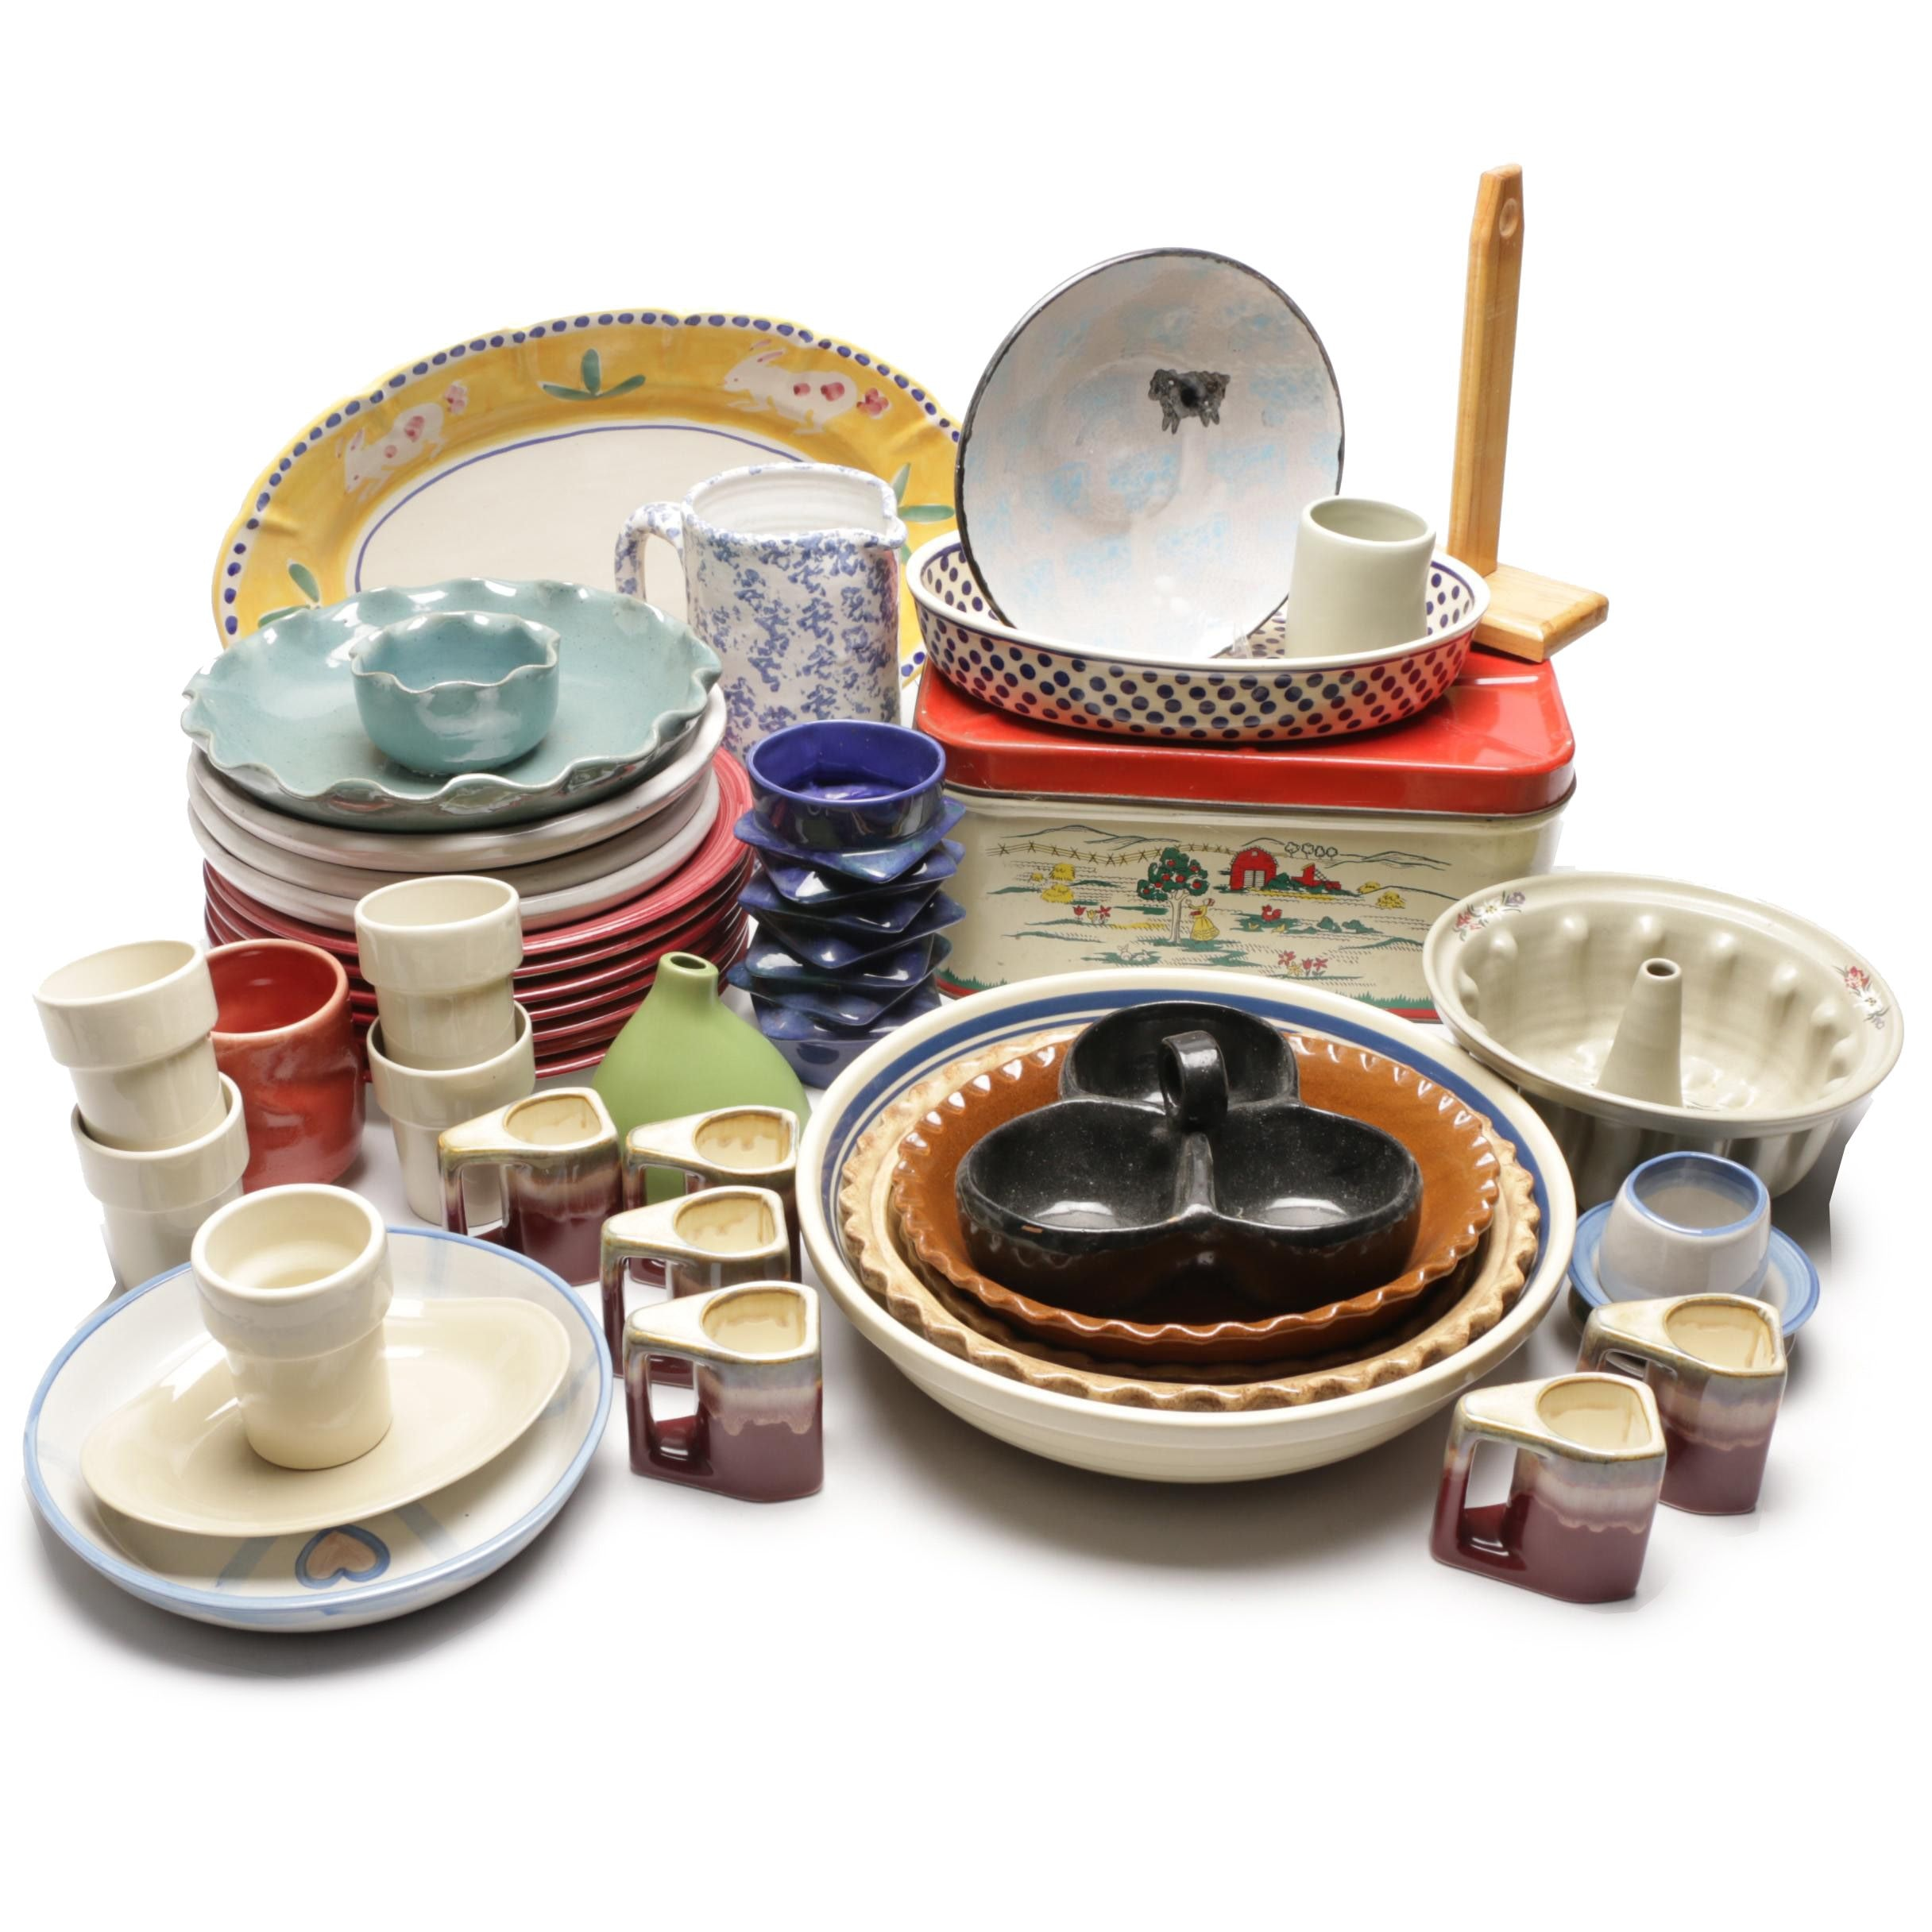 Tableware Including Boleslawiec, MA Hadley, Bybee Pottery and Handcrafted